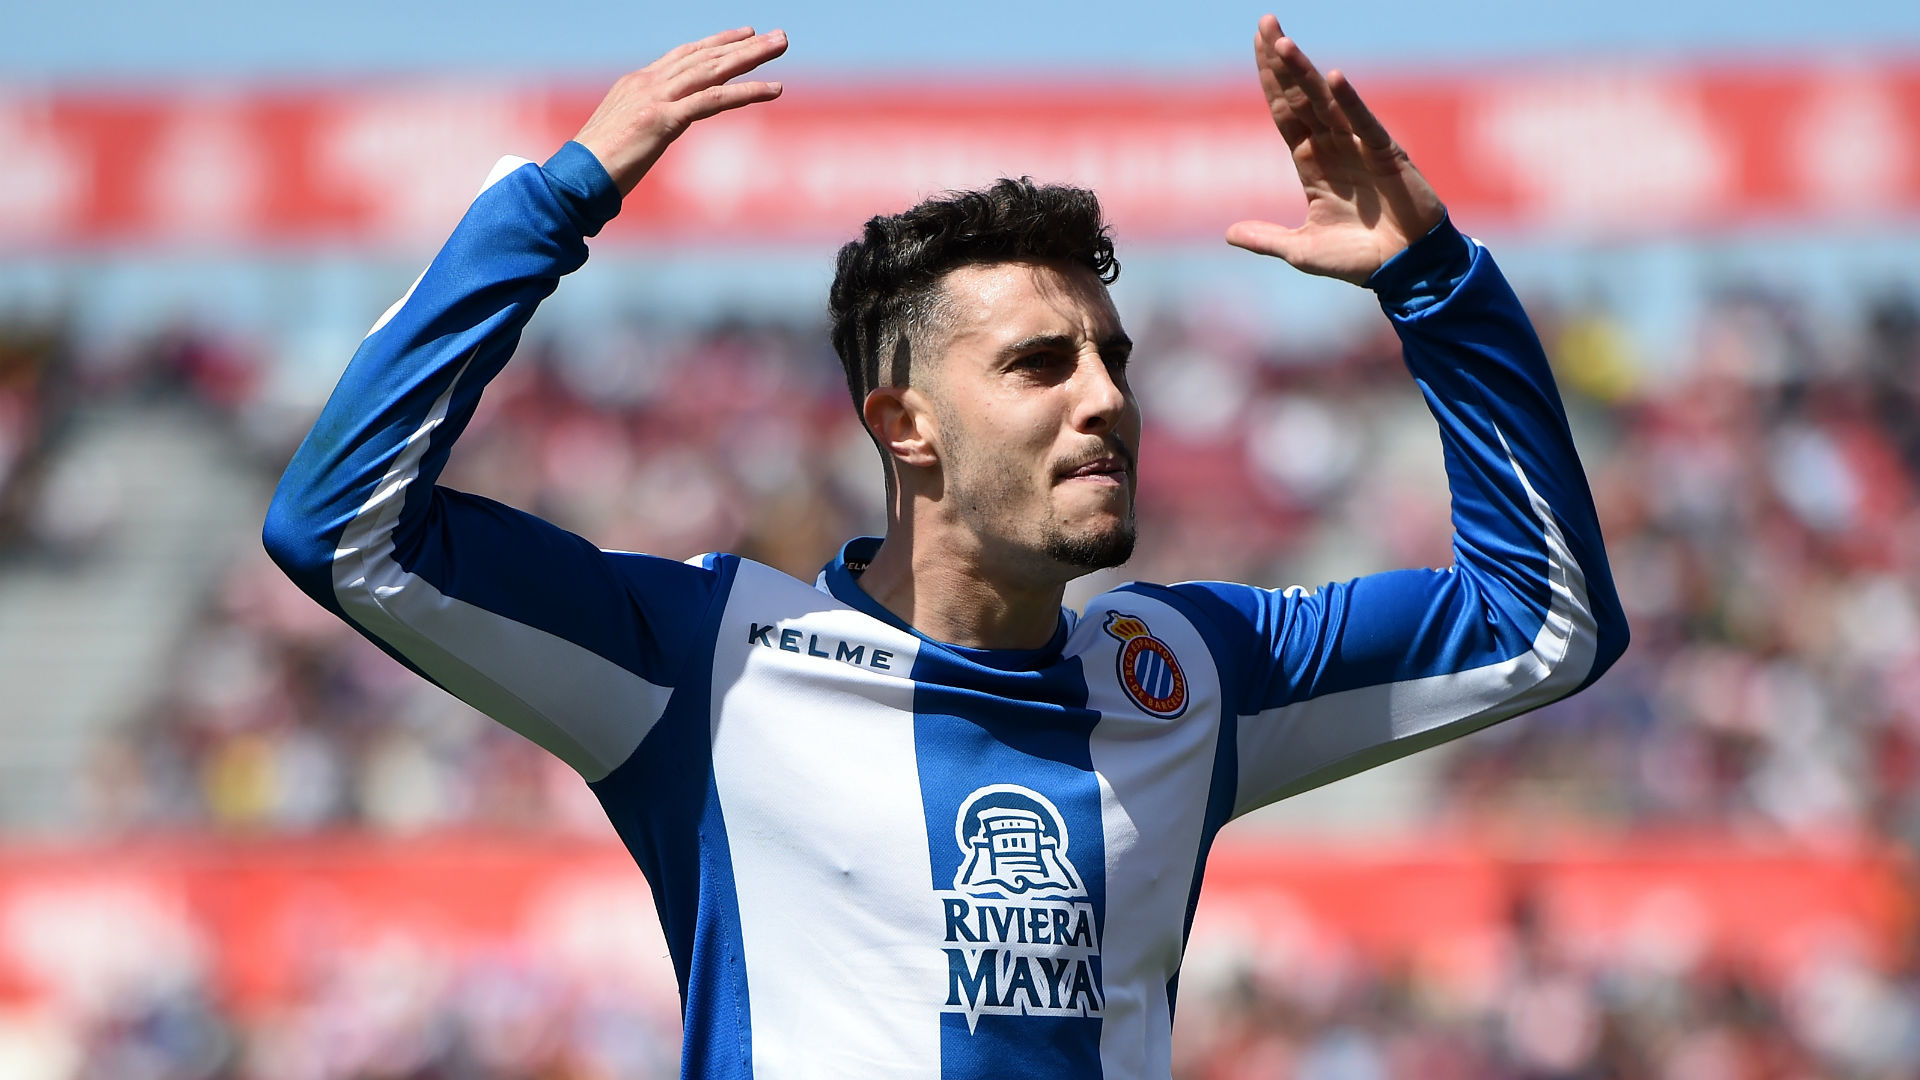 Mario Hermoso transfers to Atletico Madrid